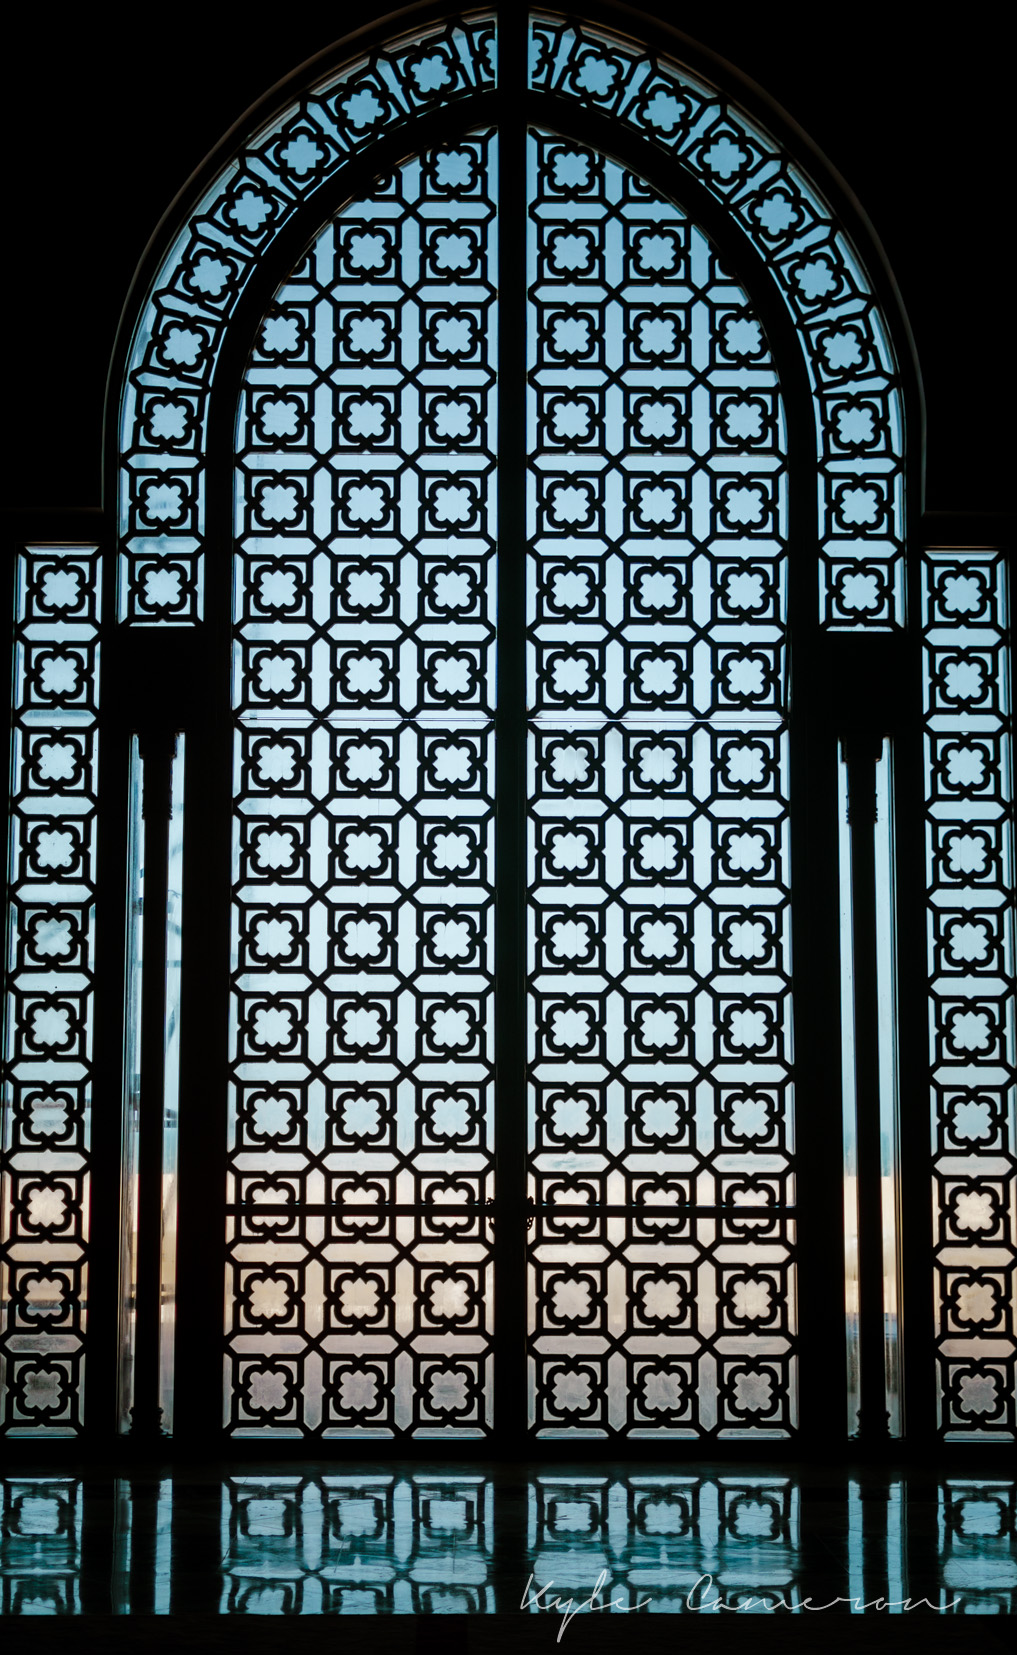 This is one of the doors in the largest mosque in Africa and the 7th largest in the world. It's the only mosque in Morocco that non-Muslims are allowed into (or maybe one of two or something like that). It's rather impressive, and quite expensive.